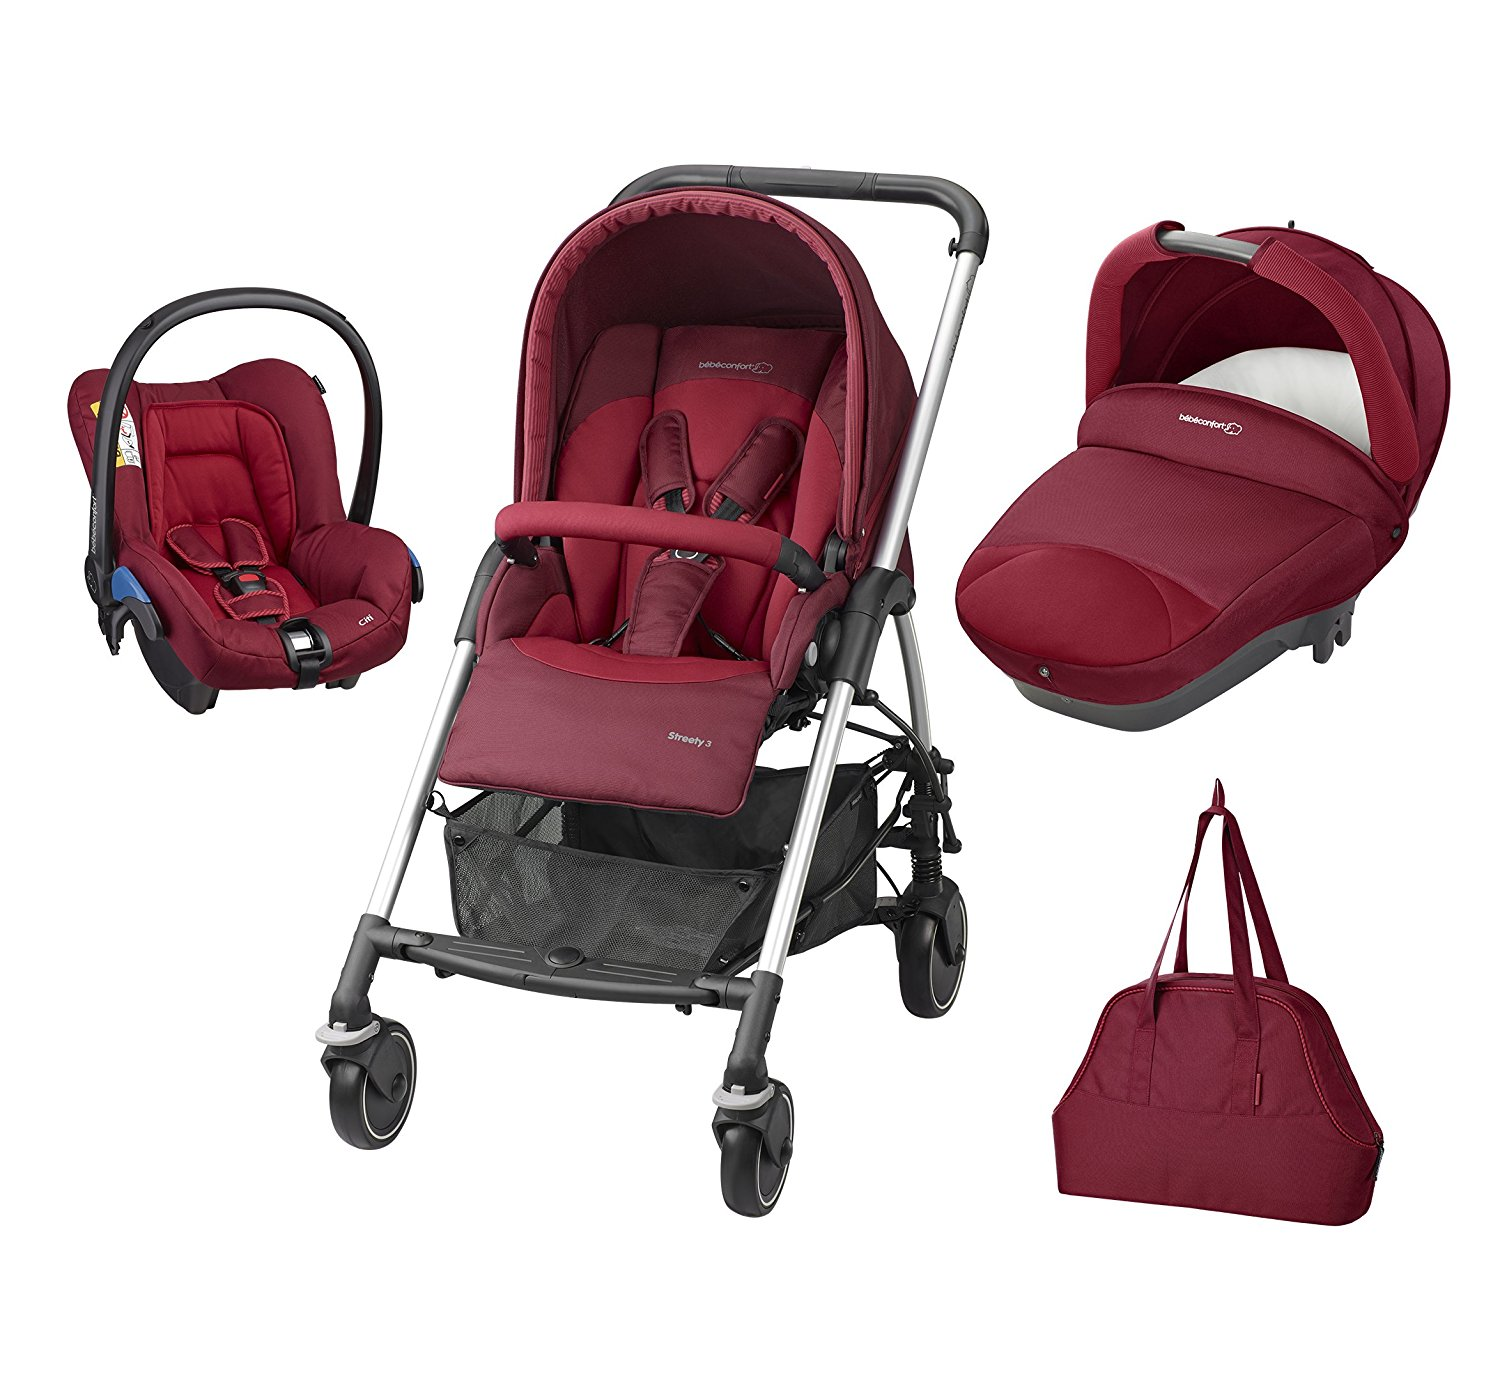 bebe Confort Poussette Combinee Trio Streety Next - Robin Red - Collection 2016